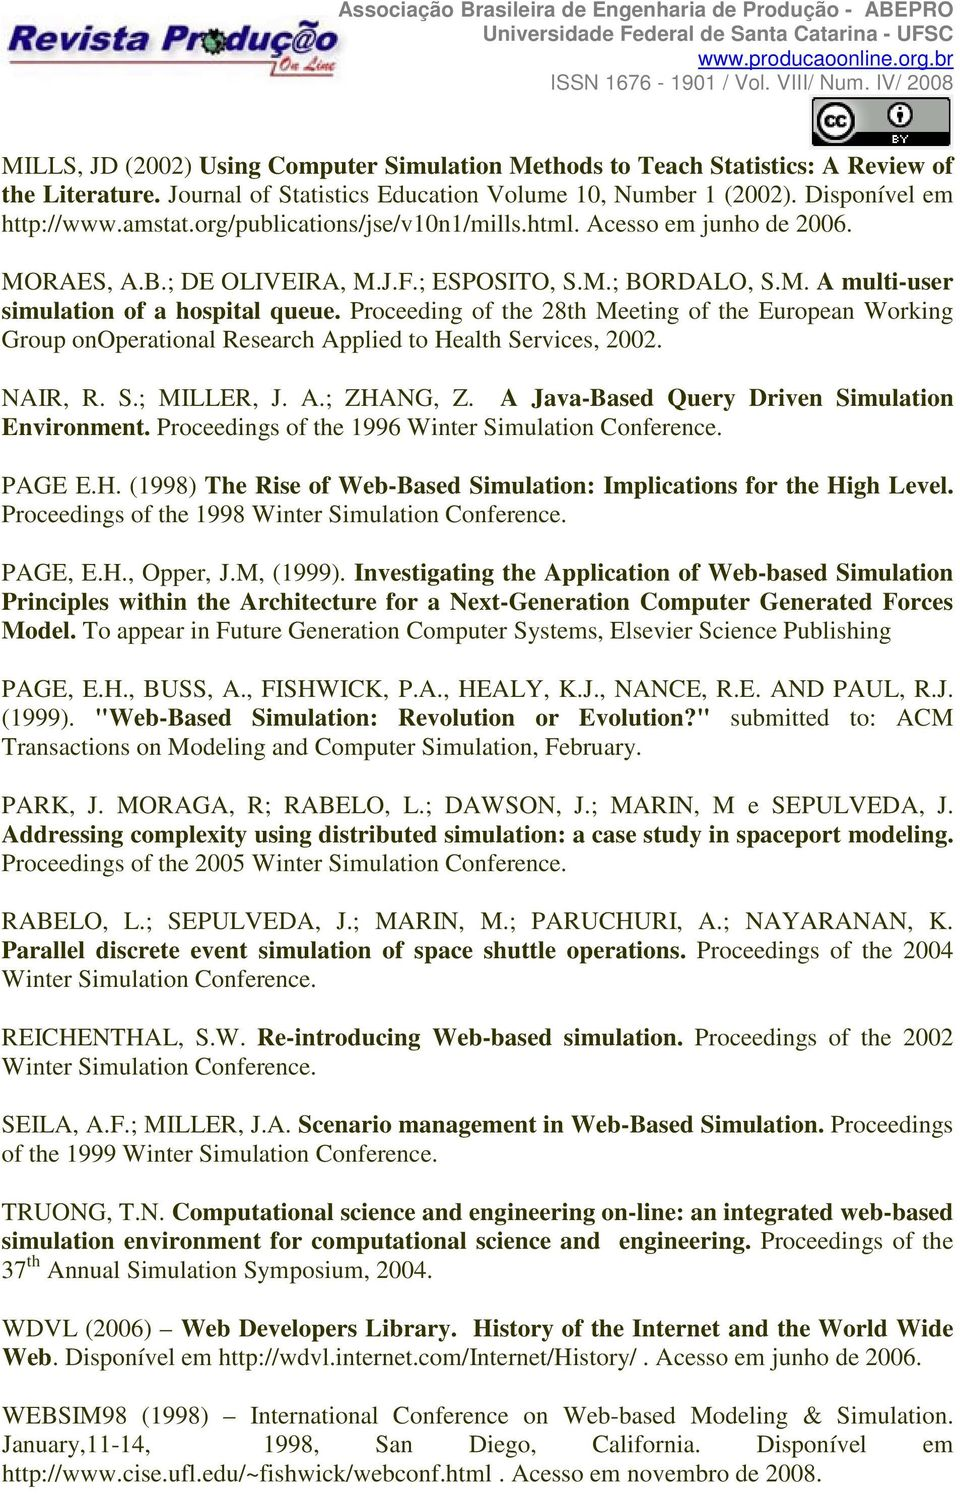 Proceeding of the 28th Meeting of the European Working Group onoperational Research Applied to Health Services, 2002. NAIR, R. S.; MILLER, J. A.; ZHANG, Z.